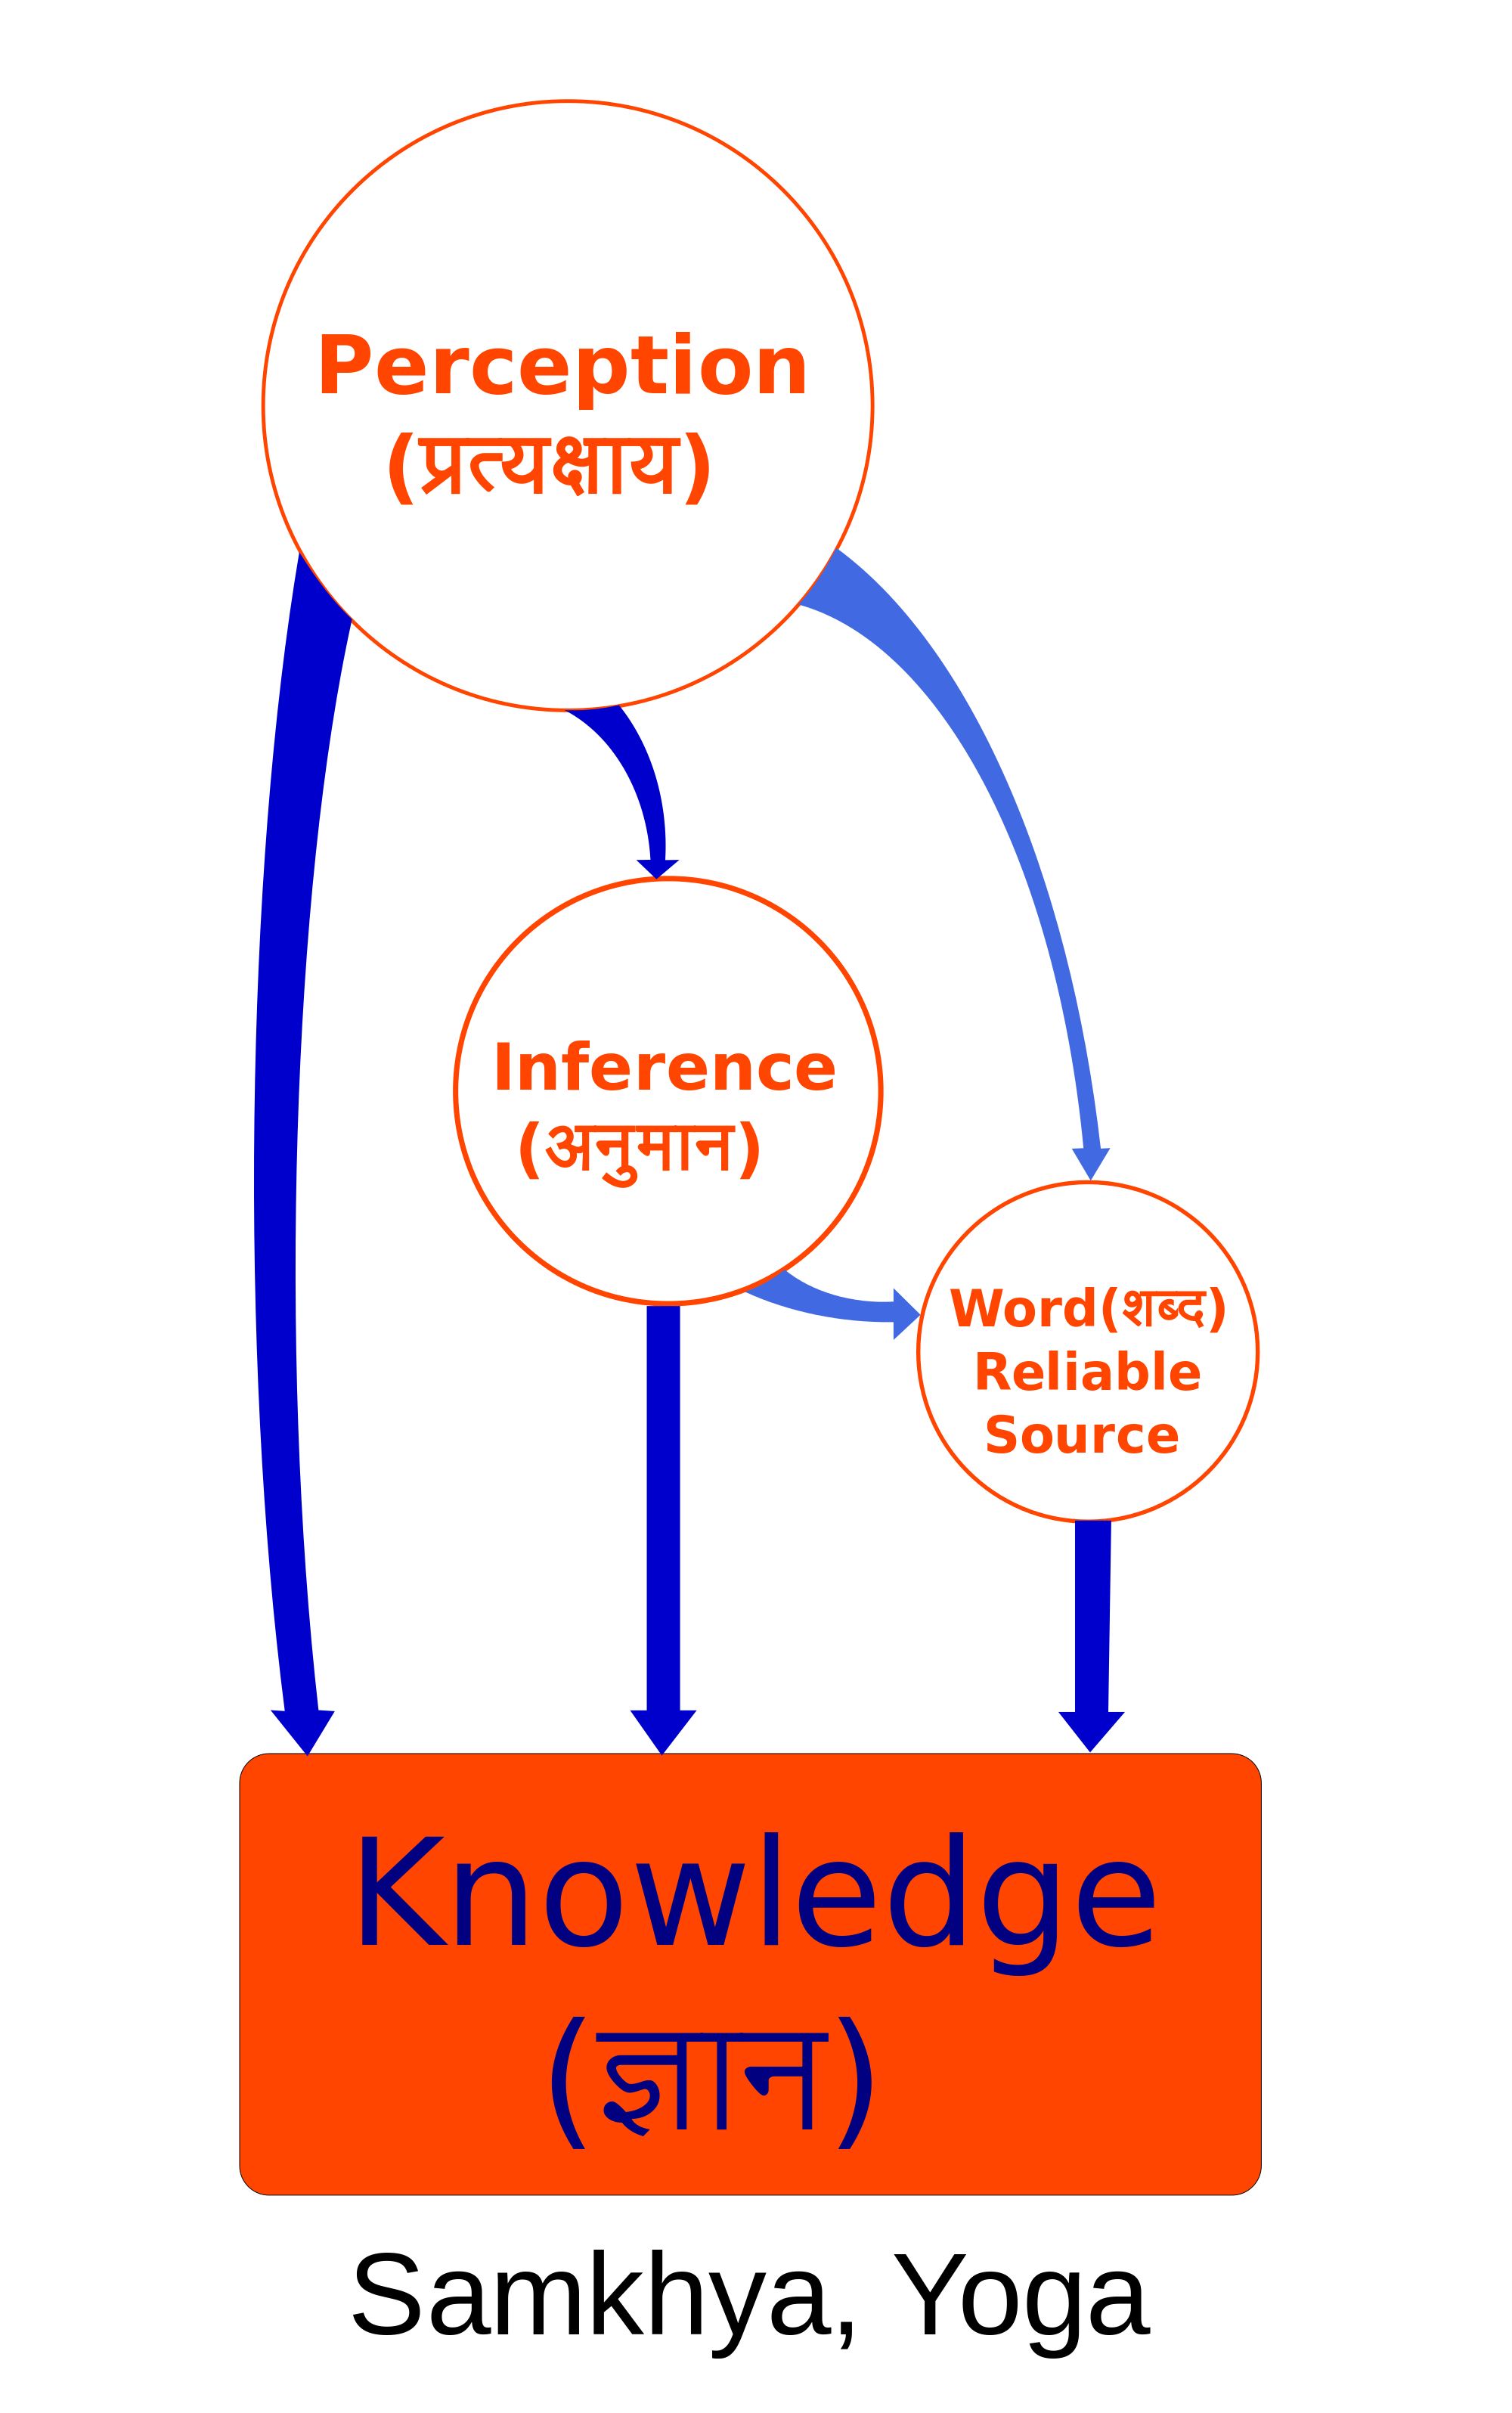 Visual representation of Samkhya epistemology. Source: Wikimedia Commons